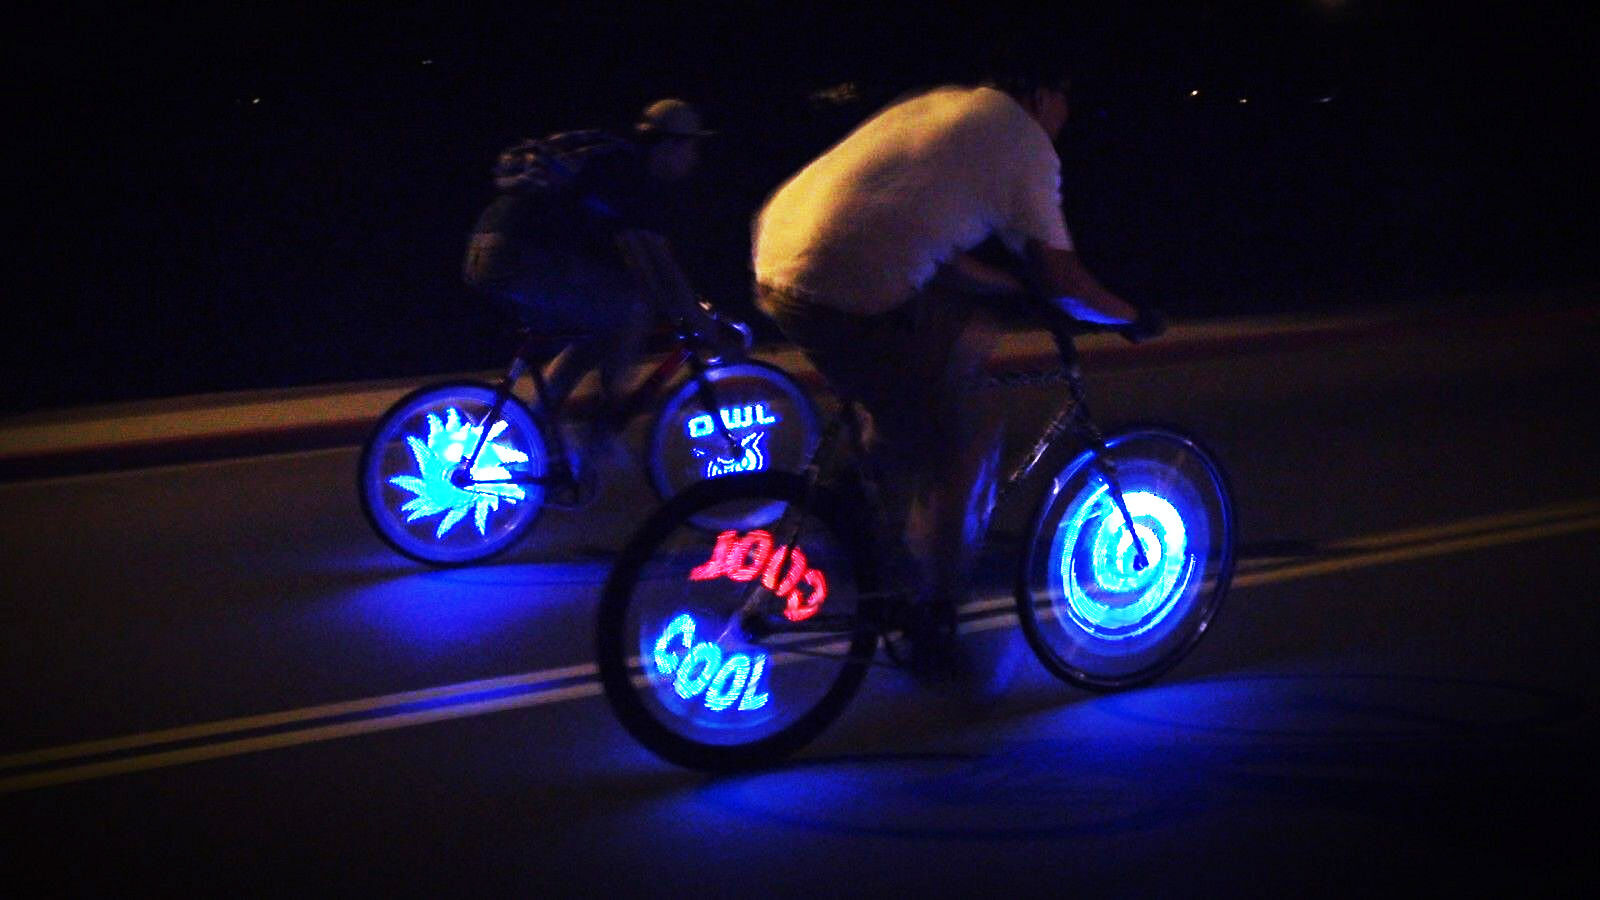 Fantasma OWL Spoke Wheel LED Light, Programmable, 24 , One Wheel (BK-2482)